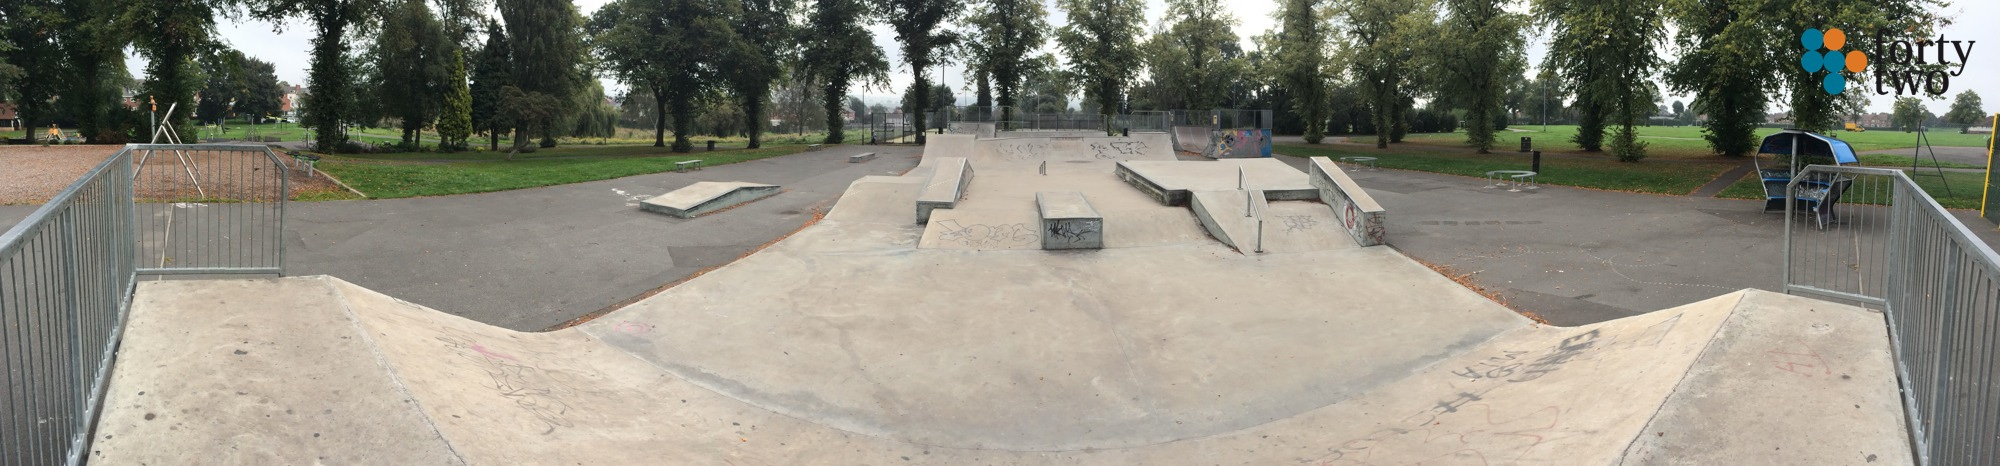 Panoramic view of Hucknall skatepark nottingham showing concrete street course